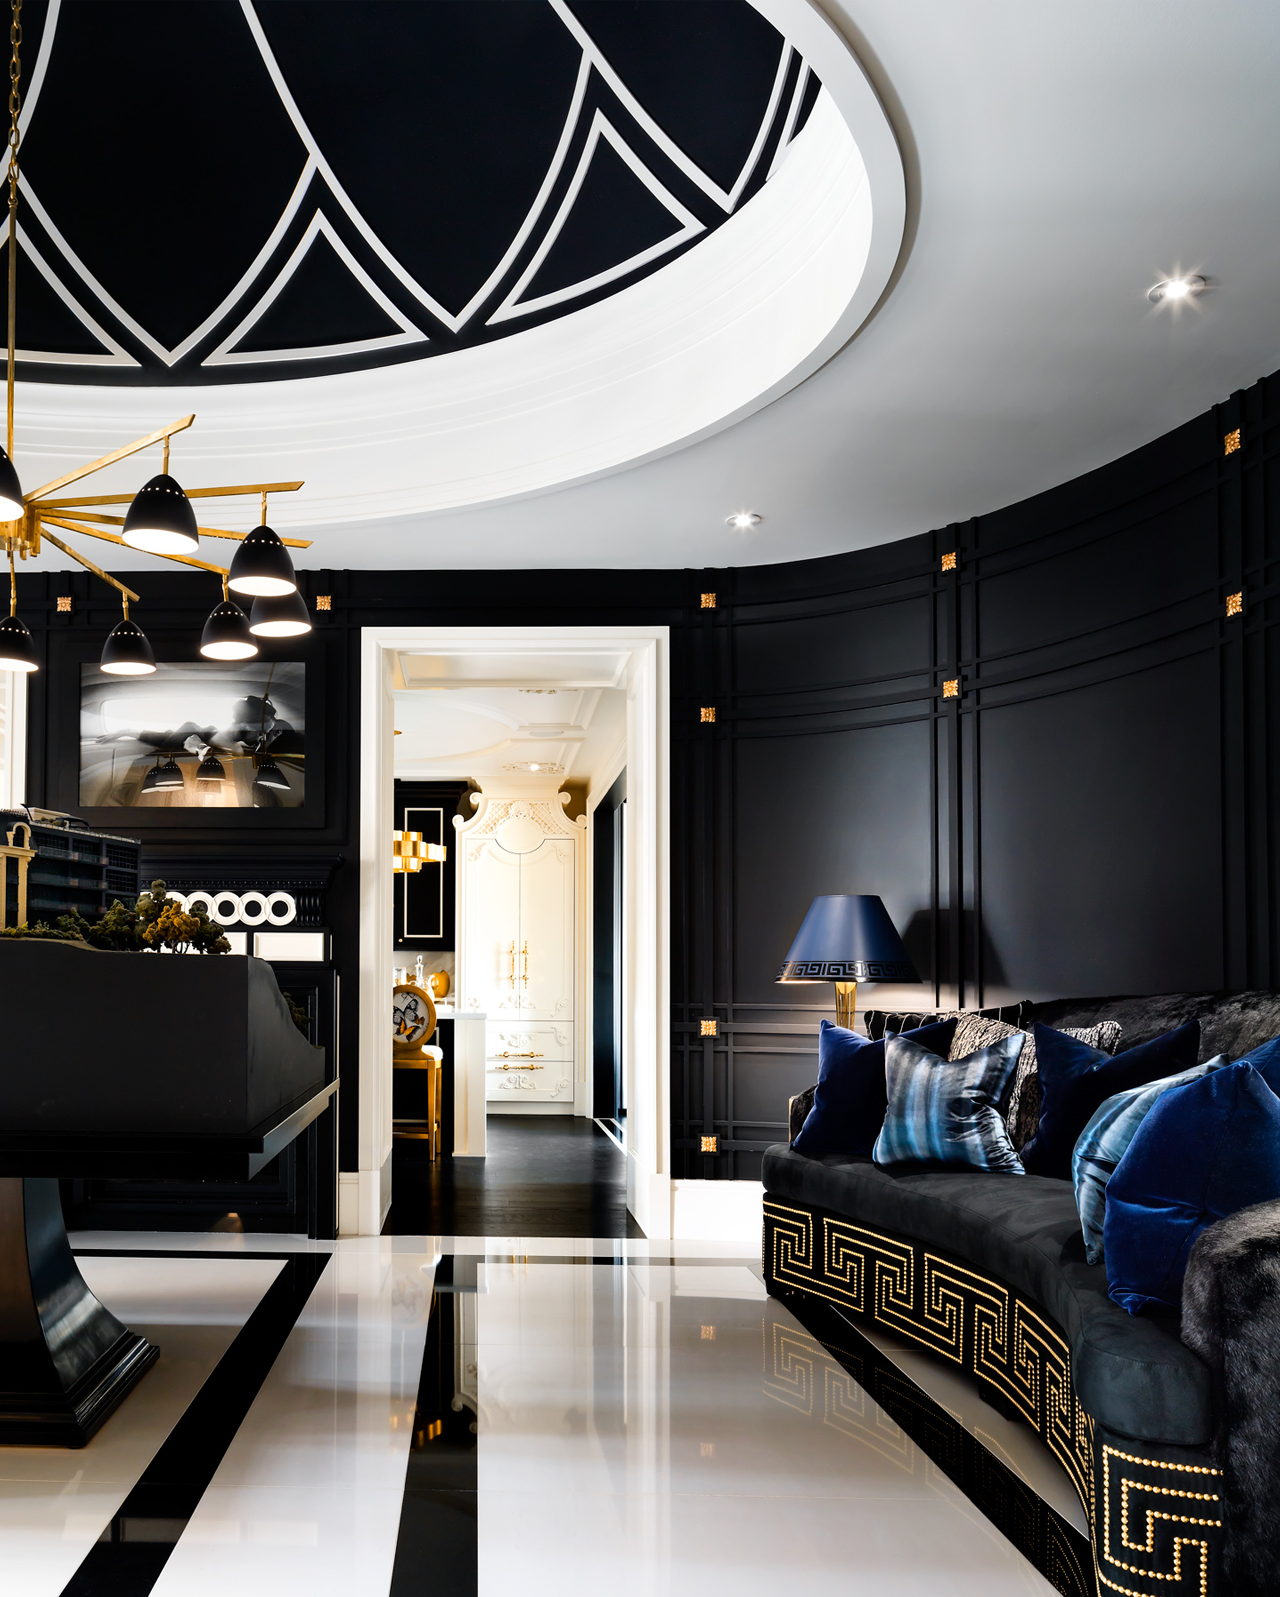 Luxury Residence By Dallas Design: Reinventing The Standard In Home Design